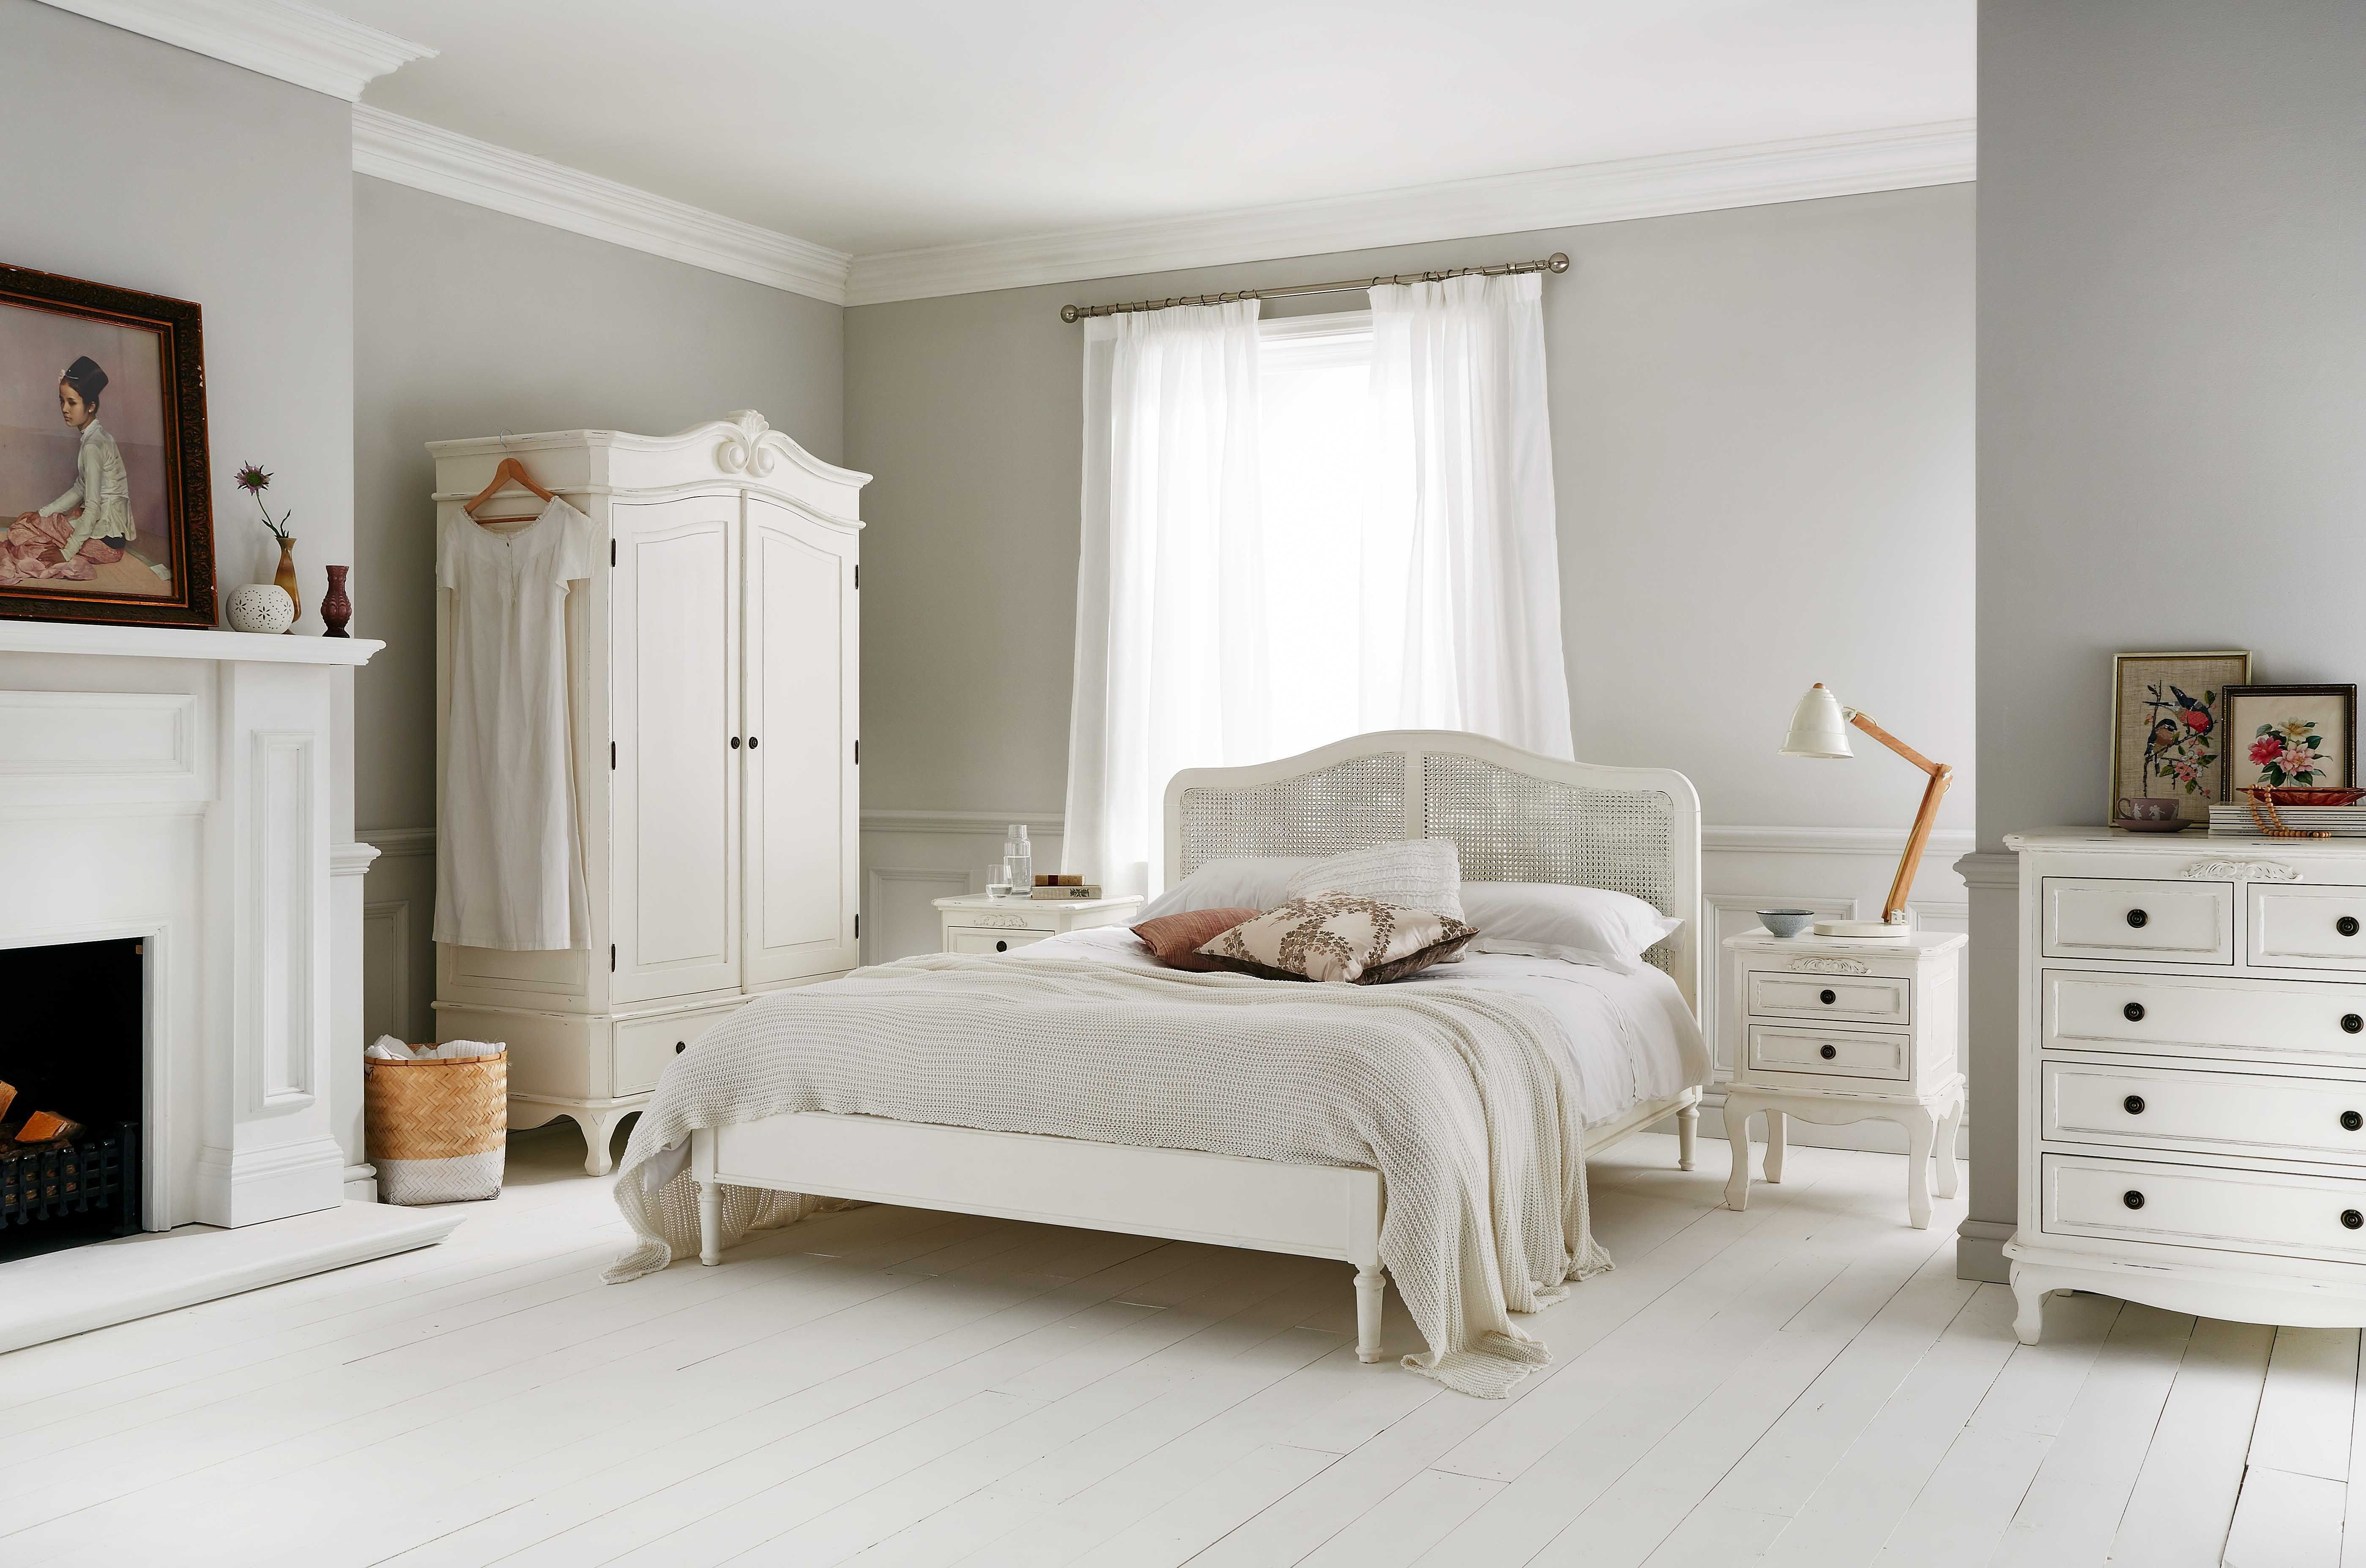 Liberty Rattan Wooden Bed Frame - Painted Wood - Wooden Beds - Beds ...